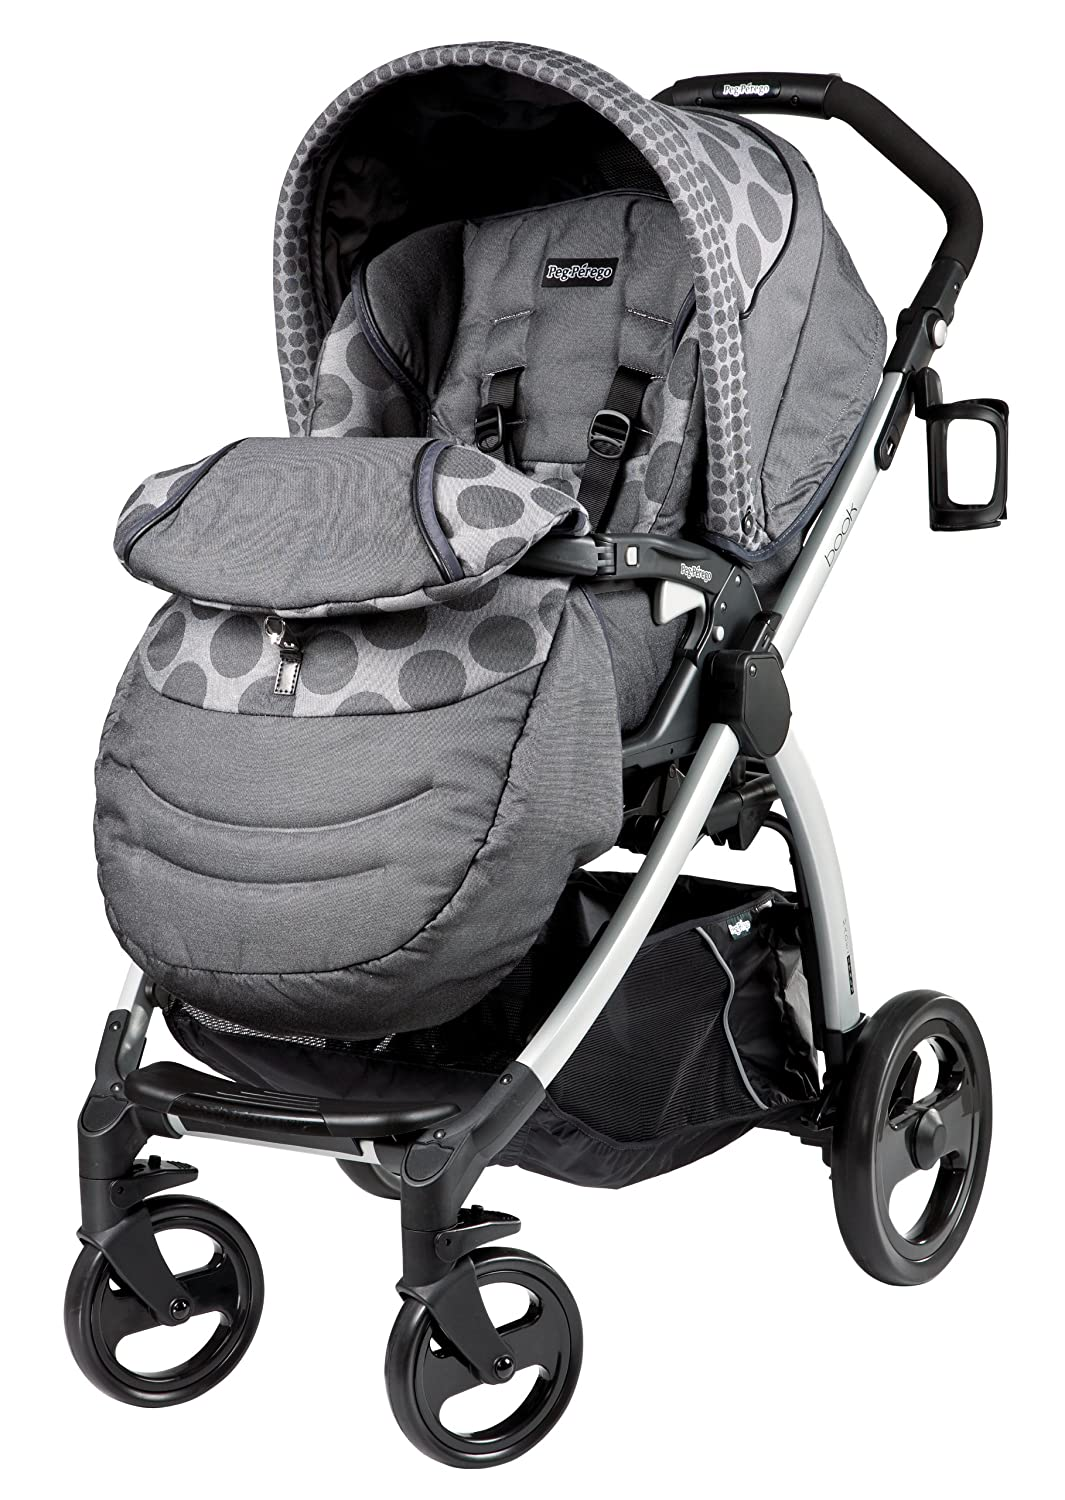 uno peg perego stroller instructions